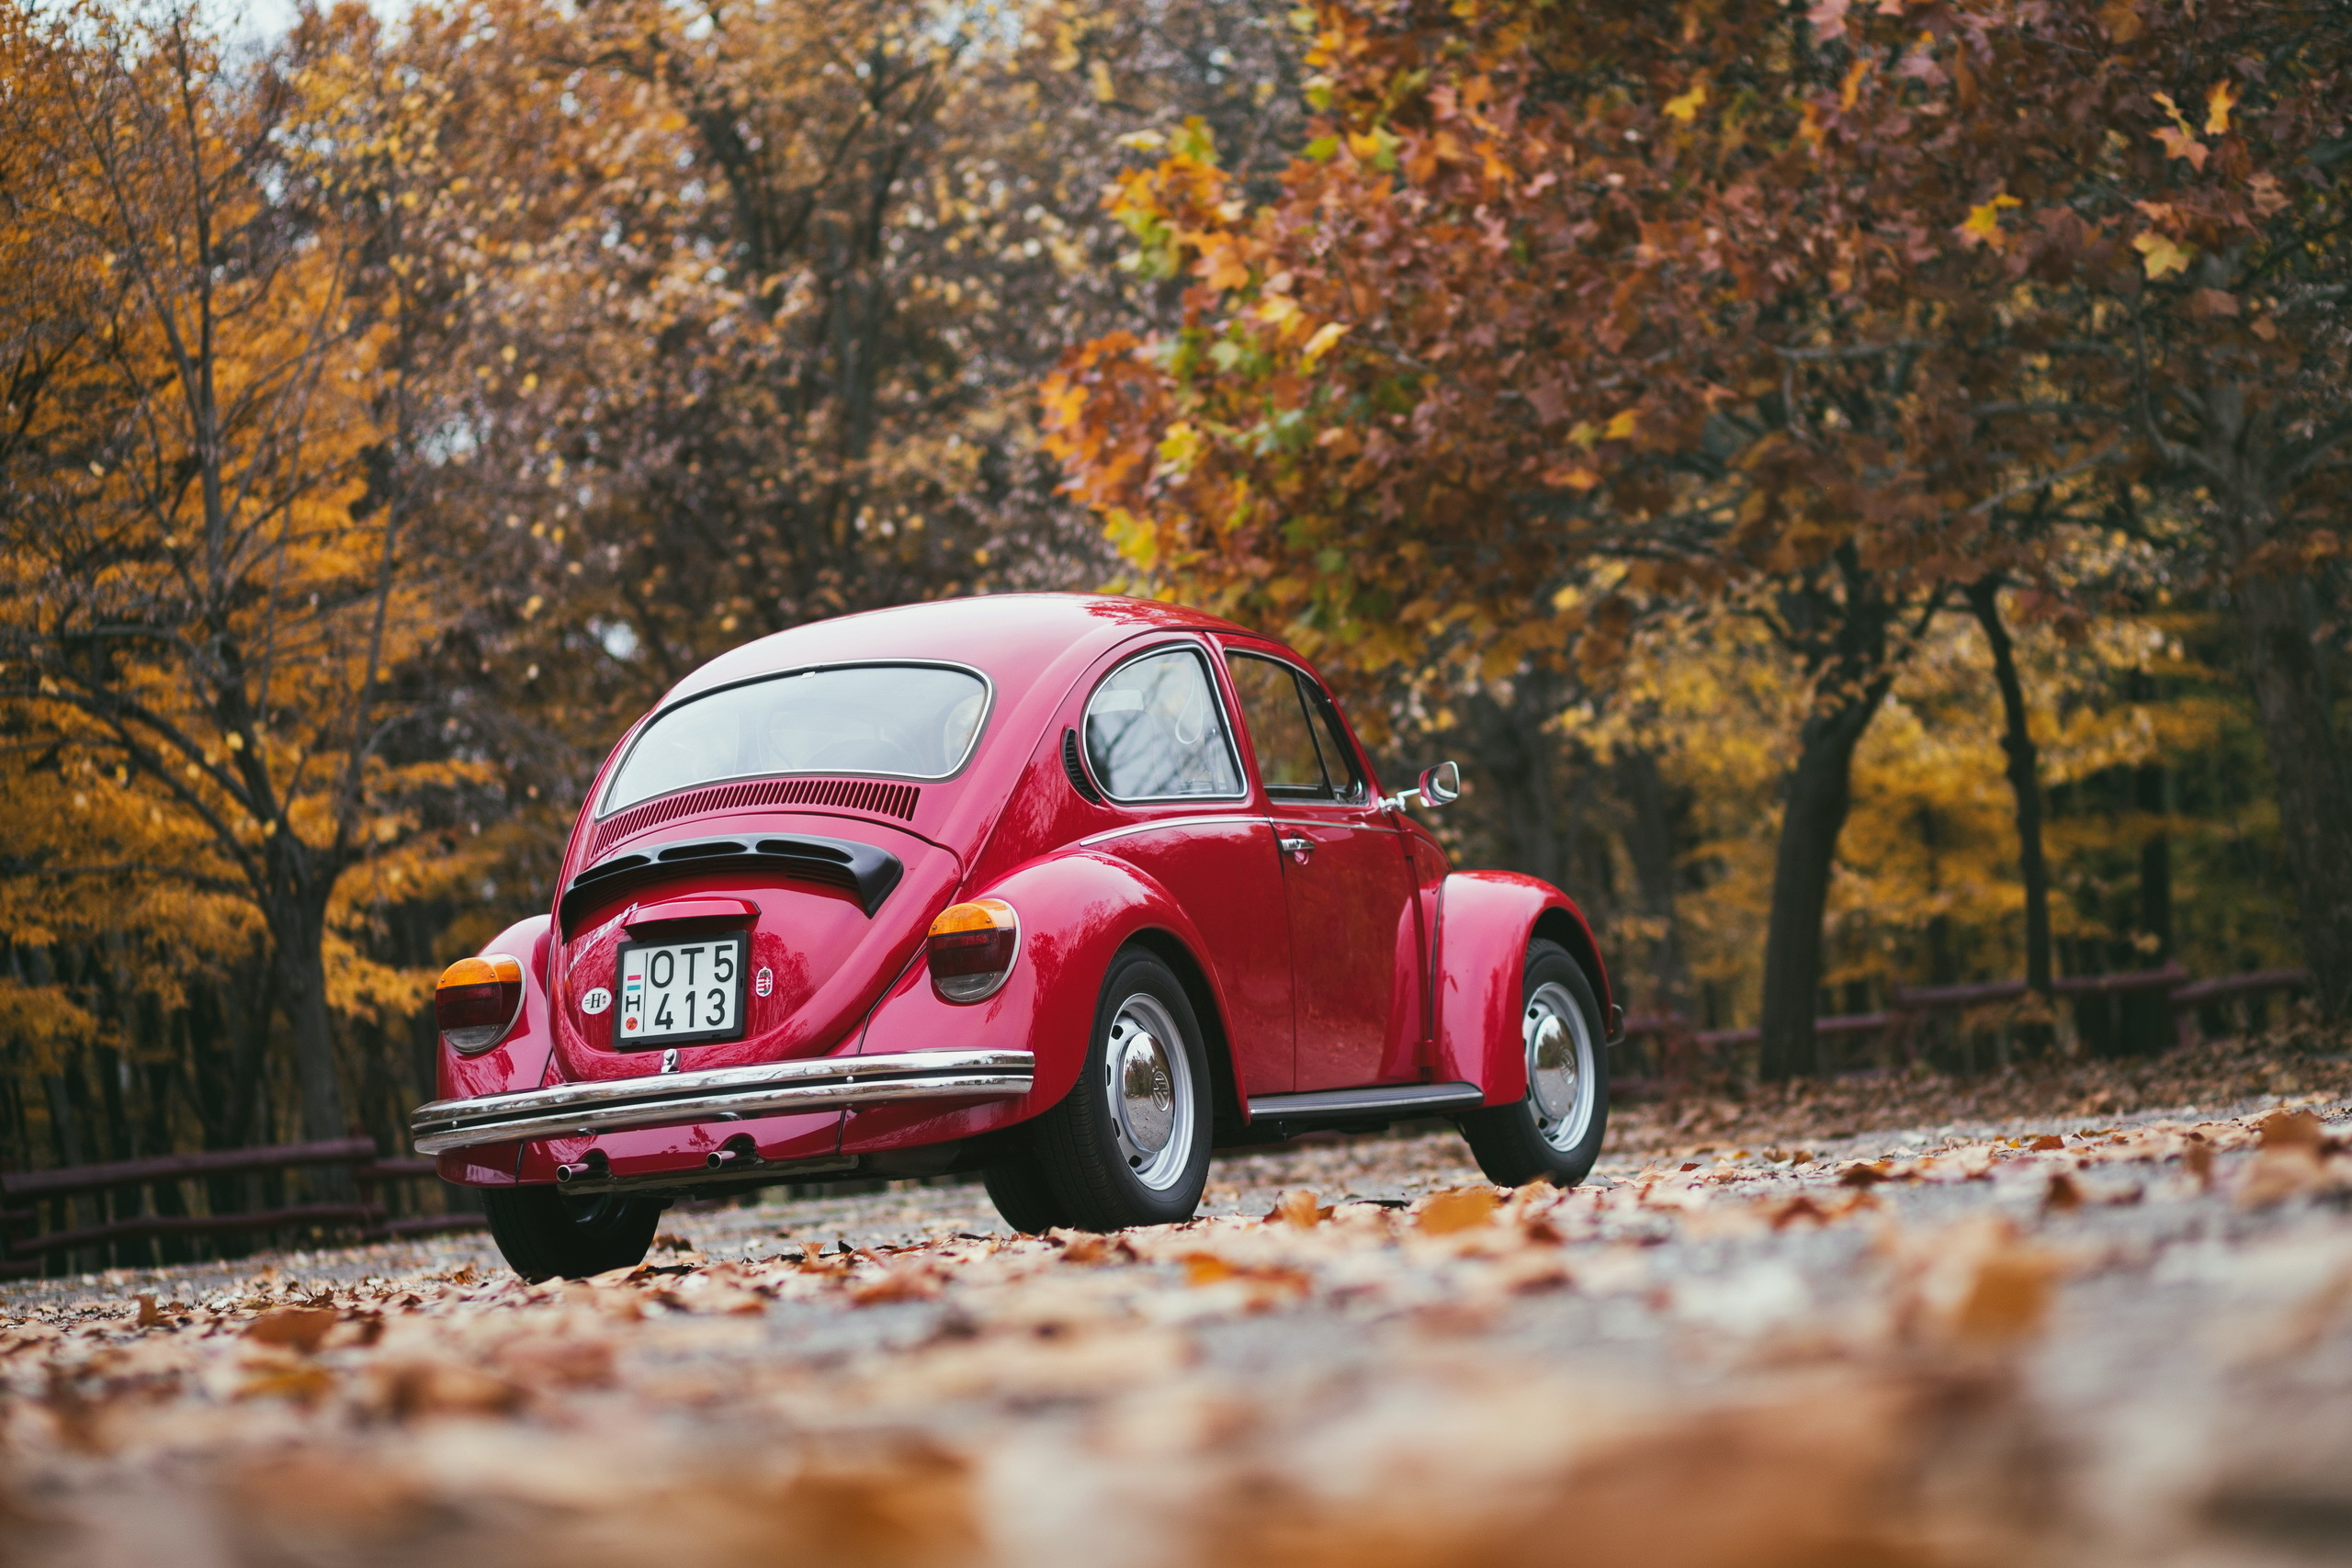 121868 download wallpaper Volkswagen, Cars, Back View, Rear View screensavers and pictures for free